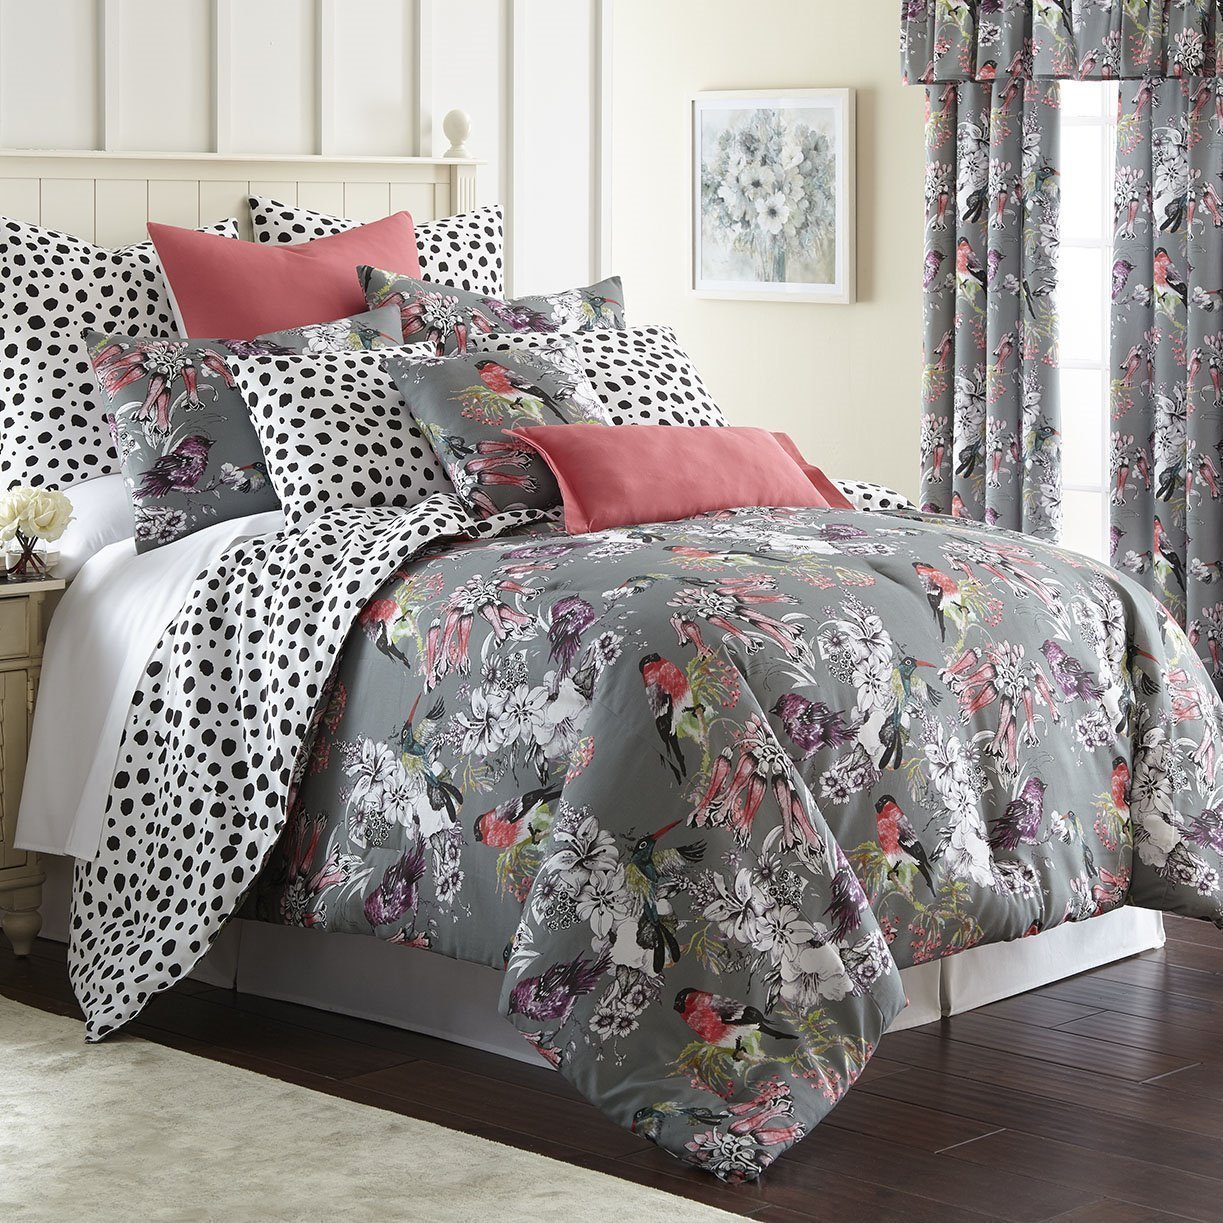 Birds In Bliss Duvet Cover Set Reversible Super Queen